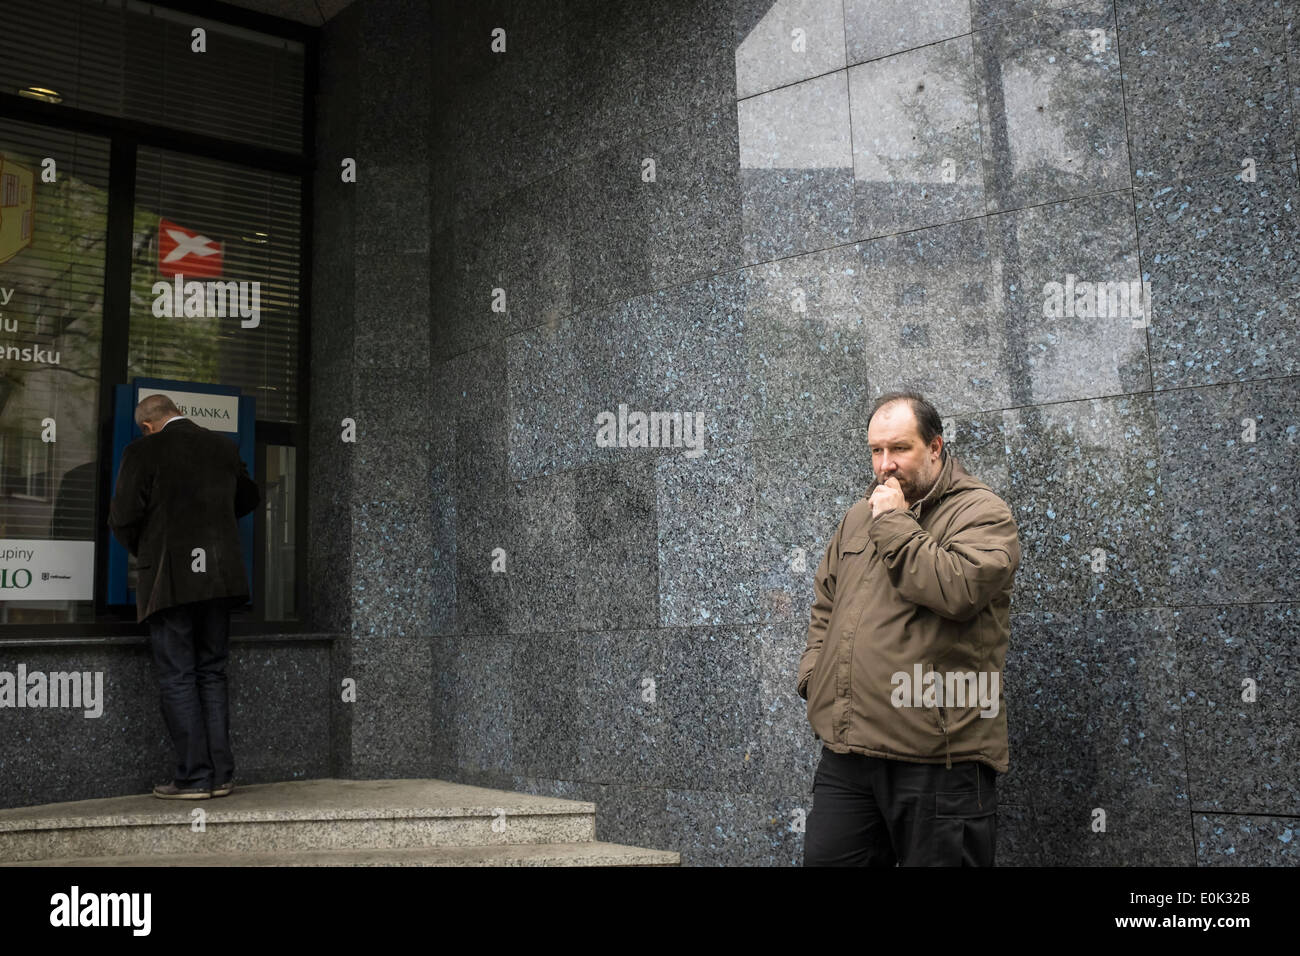 A man in front of a bank and ATM - Stock Image